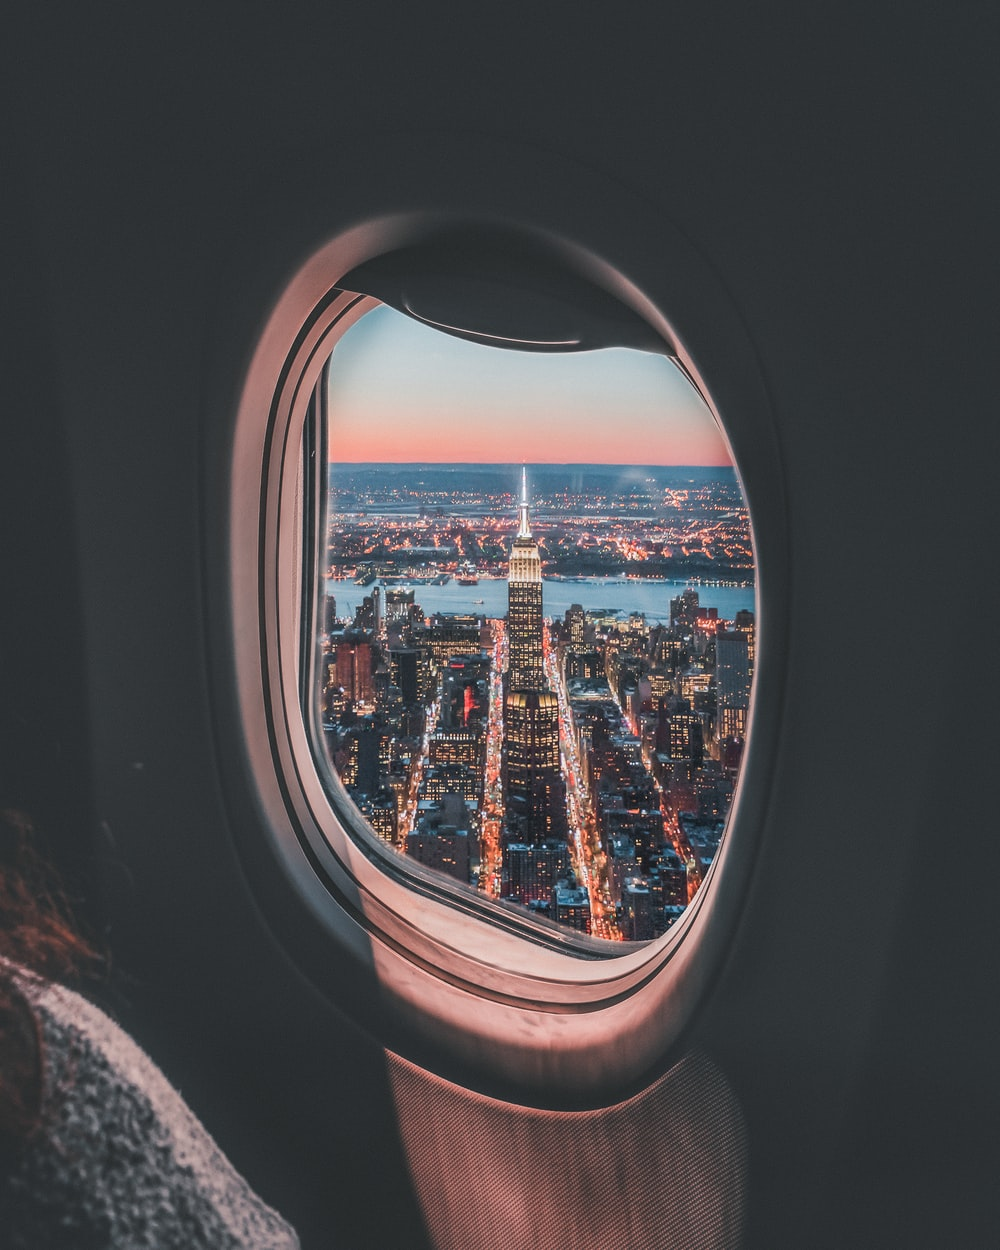 plane window photo of Empire State Building